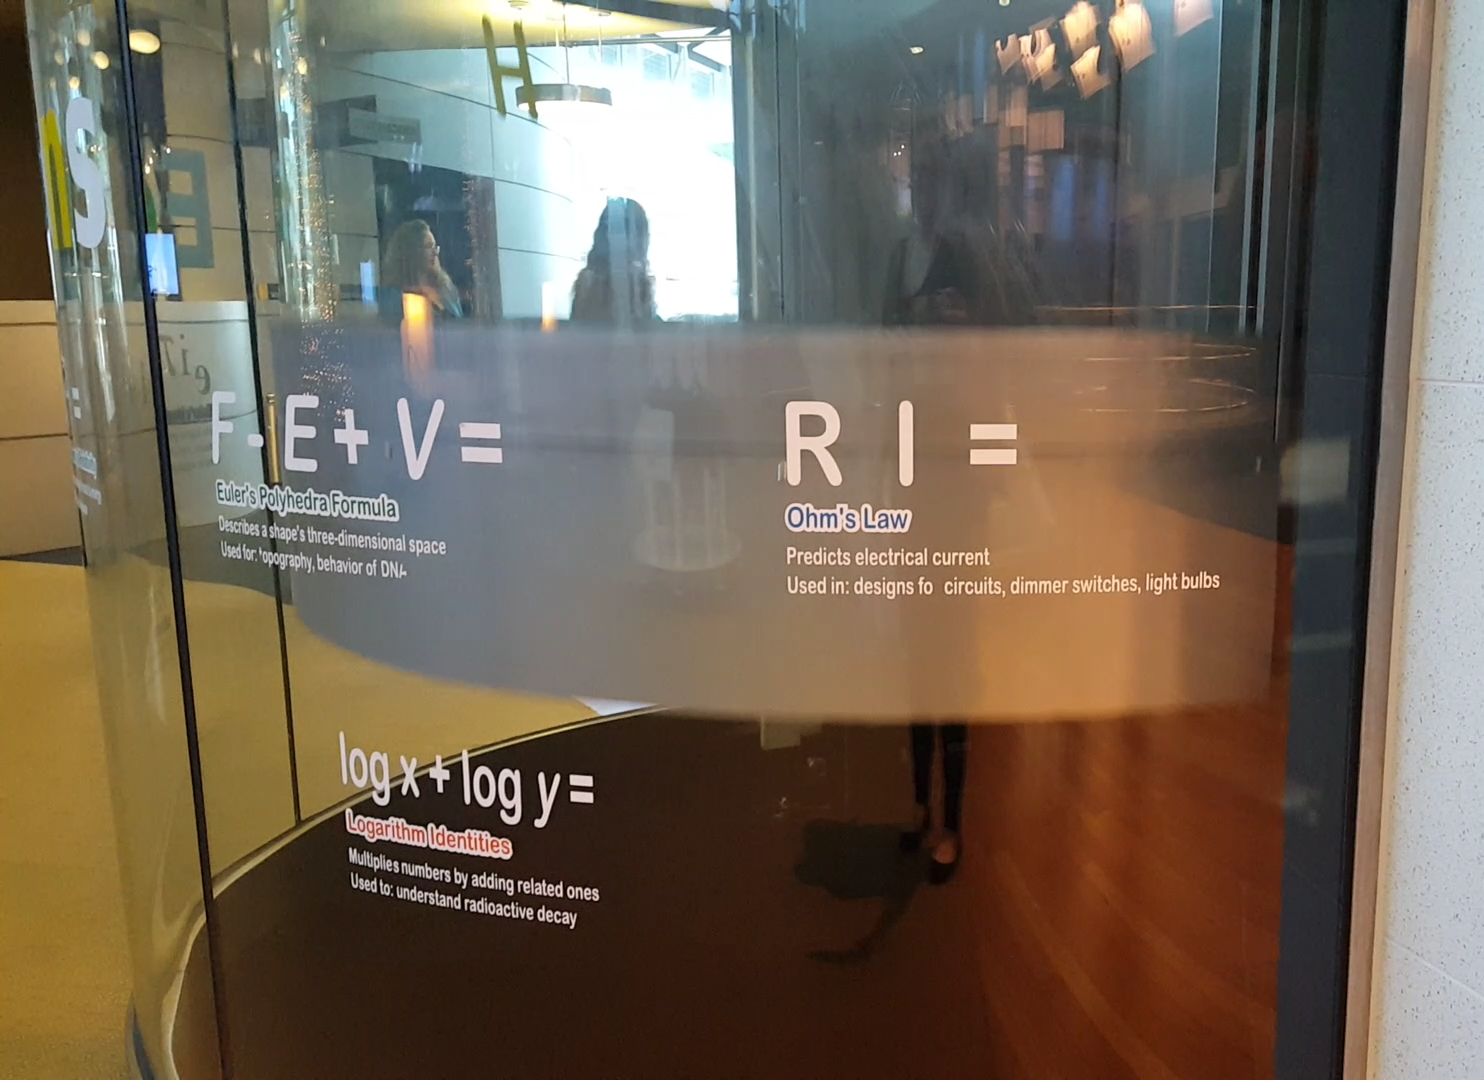 The round elevator is glass inside and out and the glass lines up the equations listed